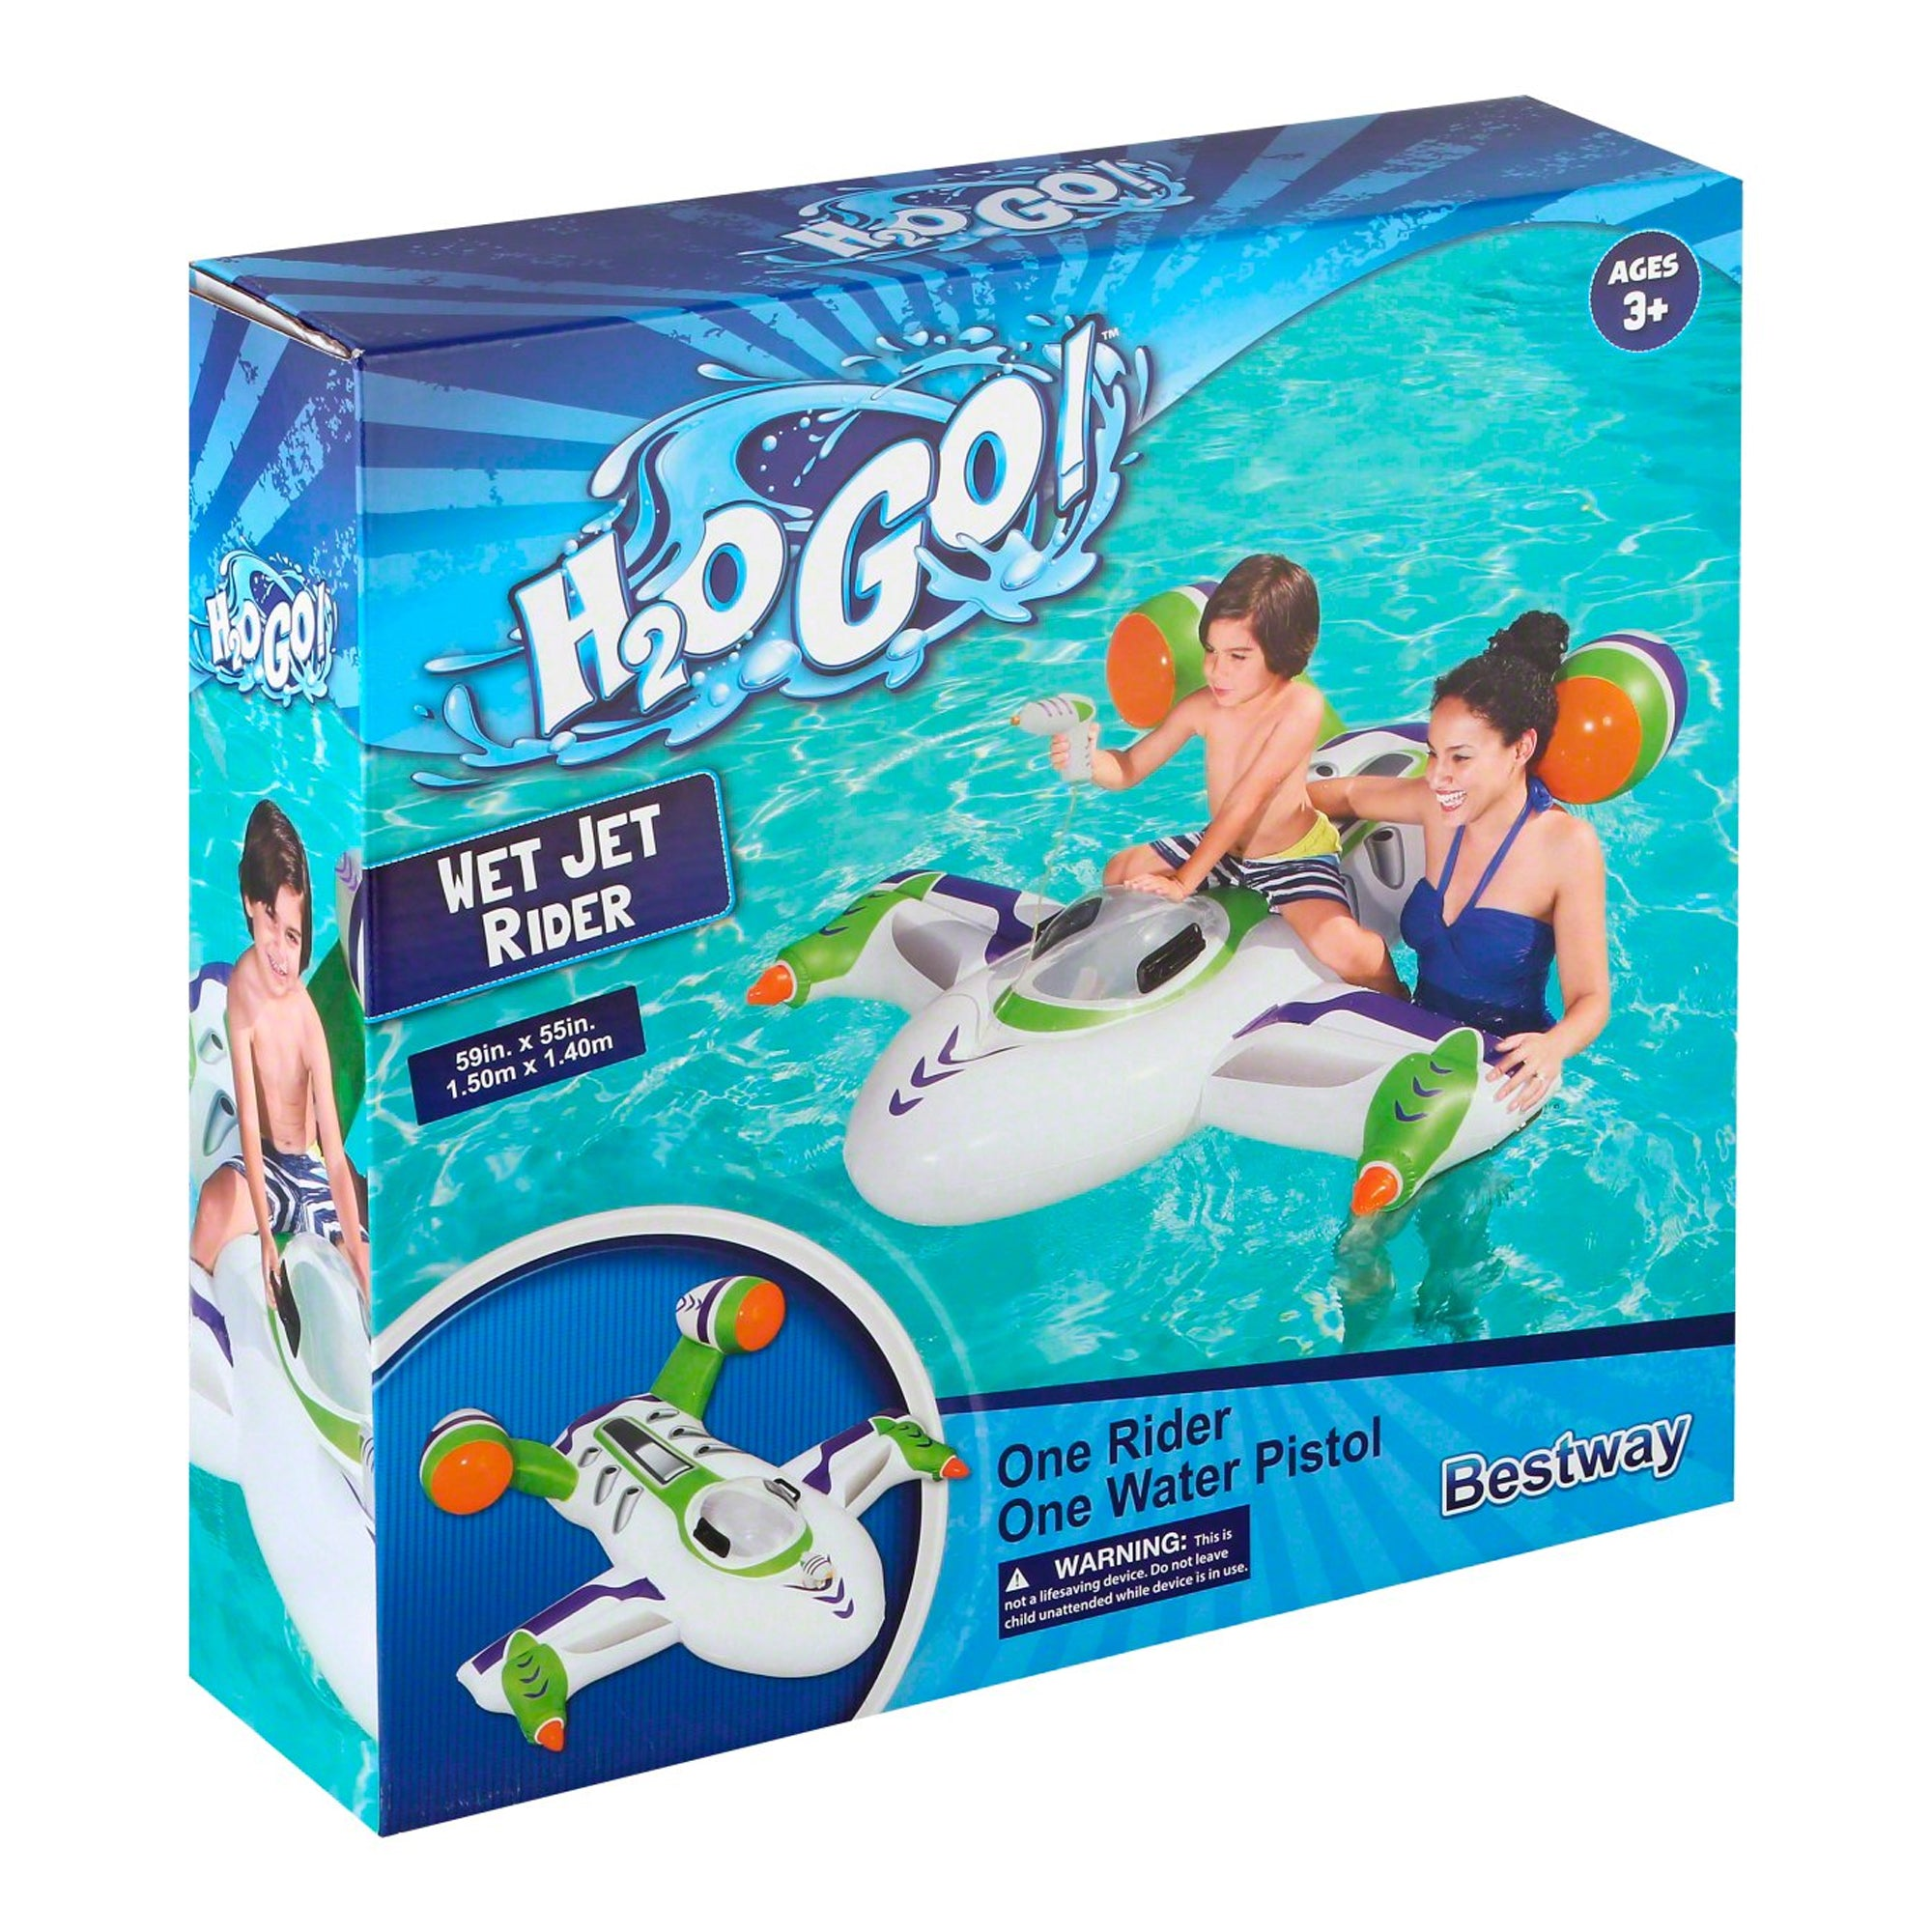 H2OGO! Wet Jet Rider Inflatable Pool Float w/ Water Pistol